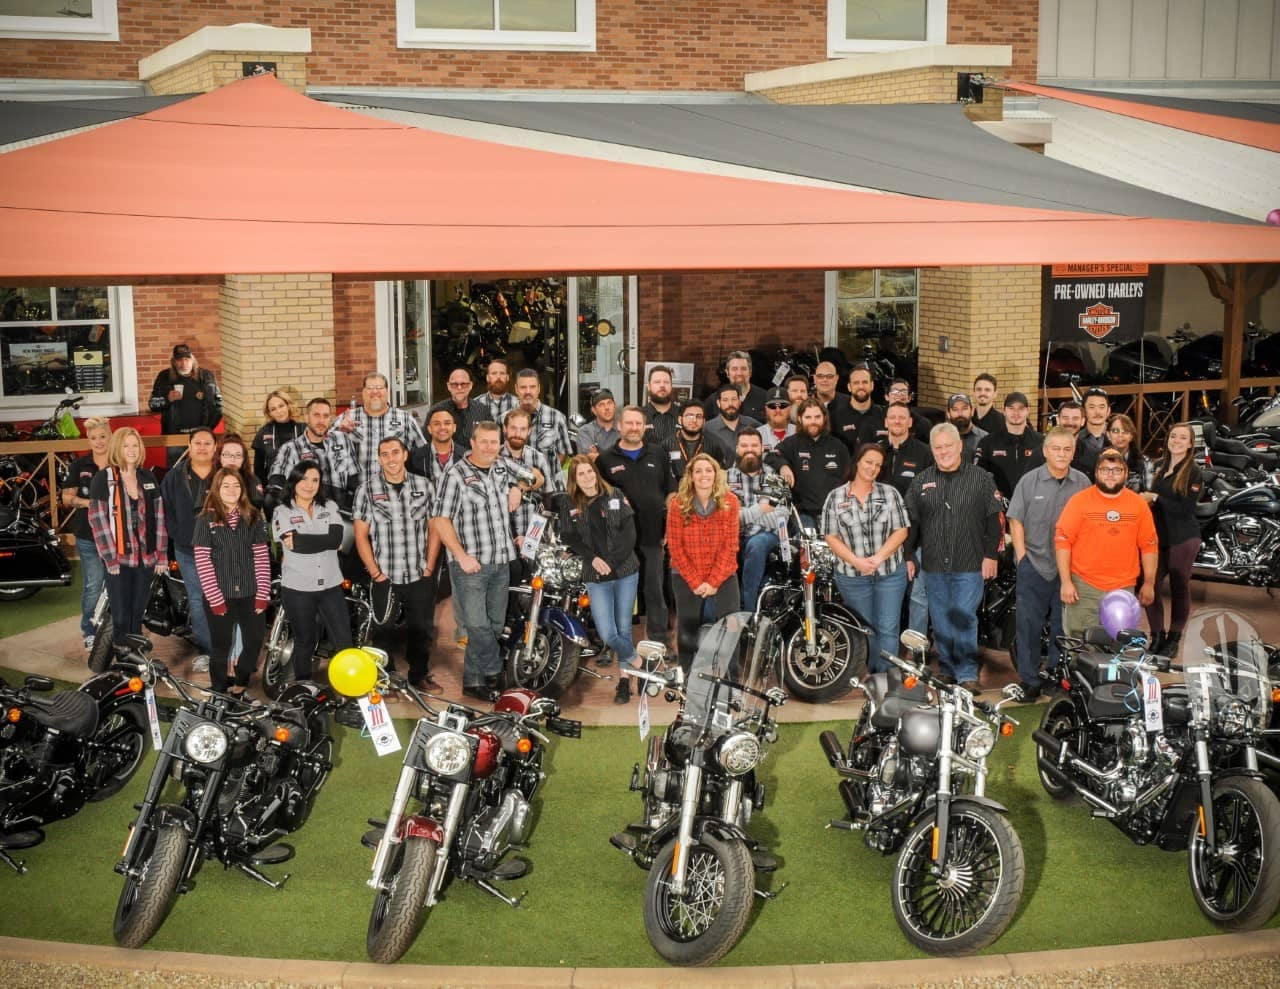 Wide angle group photo of the staff working at Chandler Harley-Davidson.